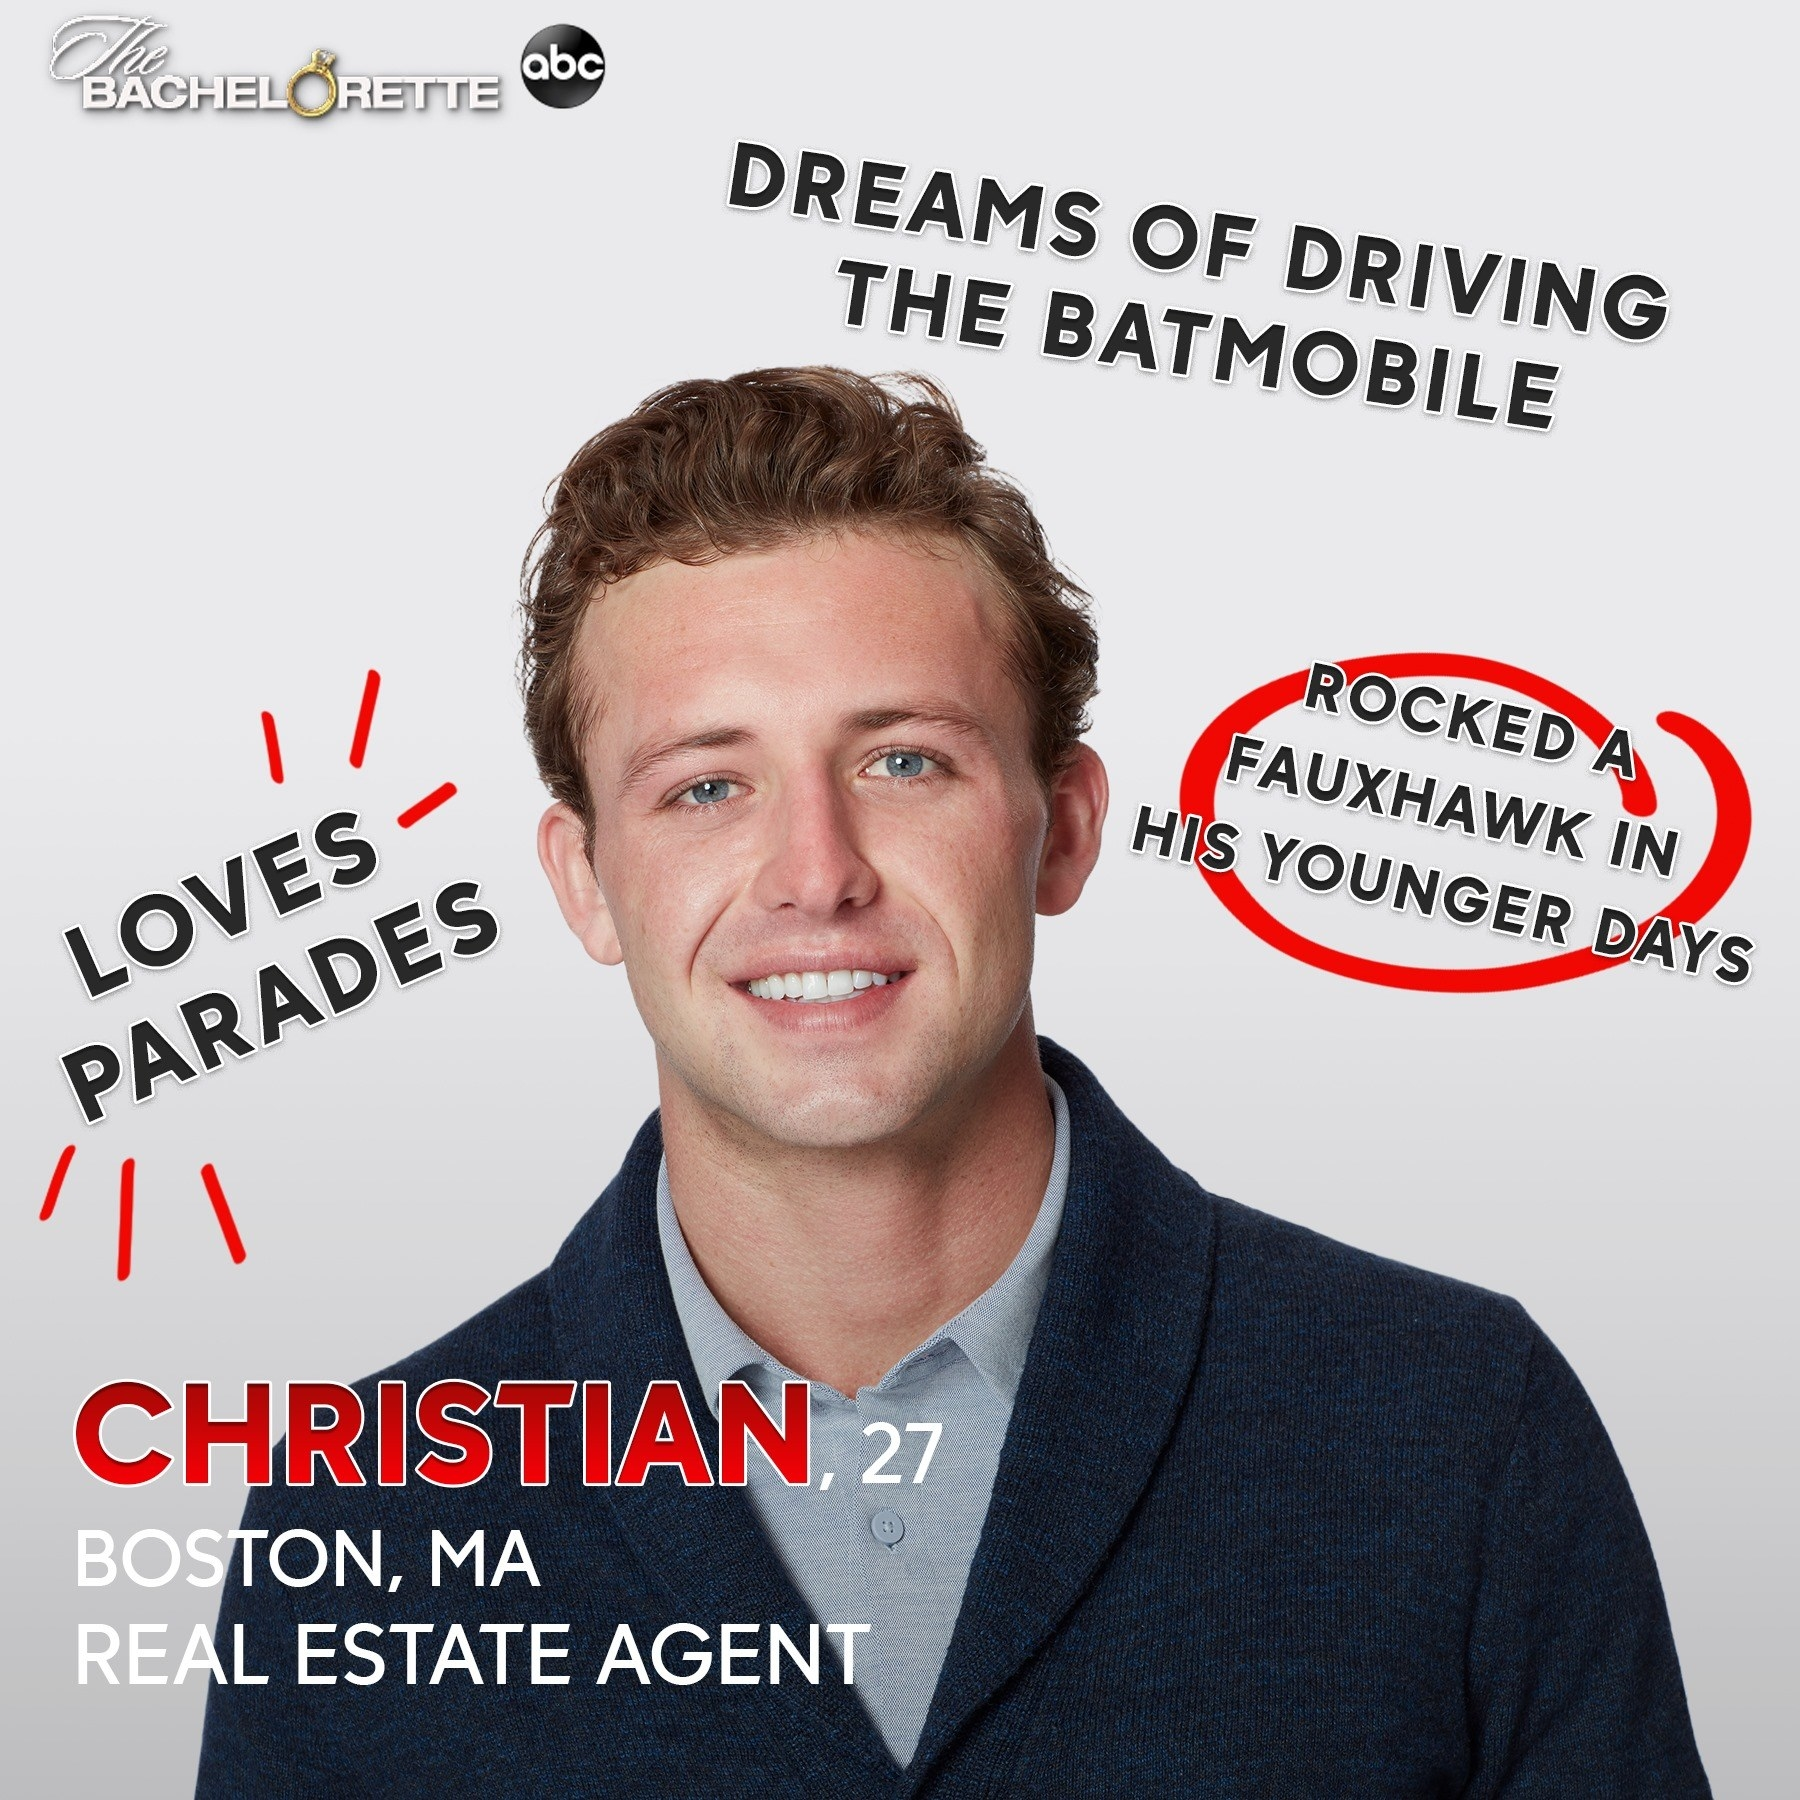 A real estate agent who loves parades and dreams of driving the Batmobile